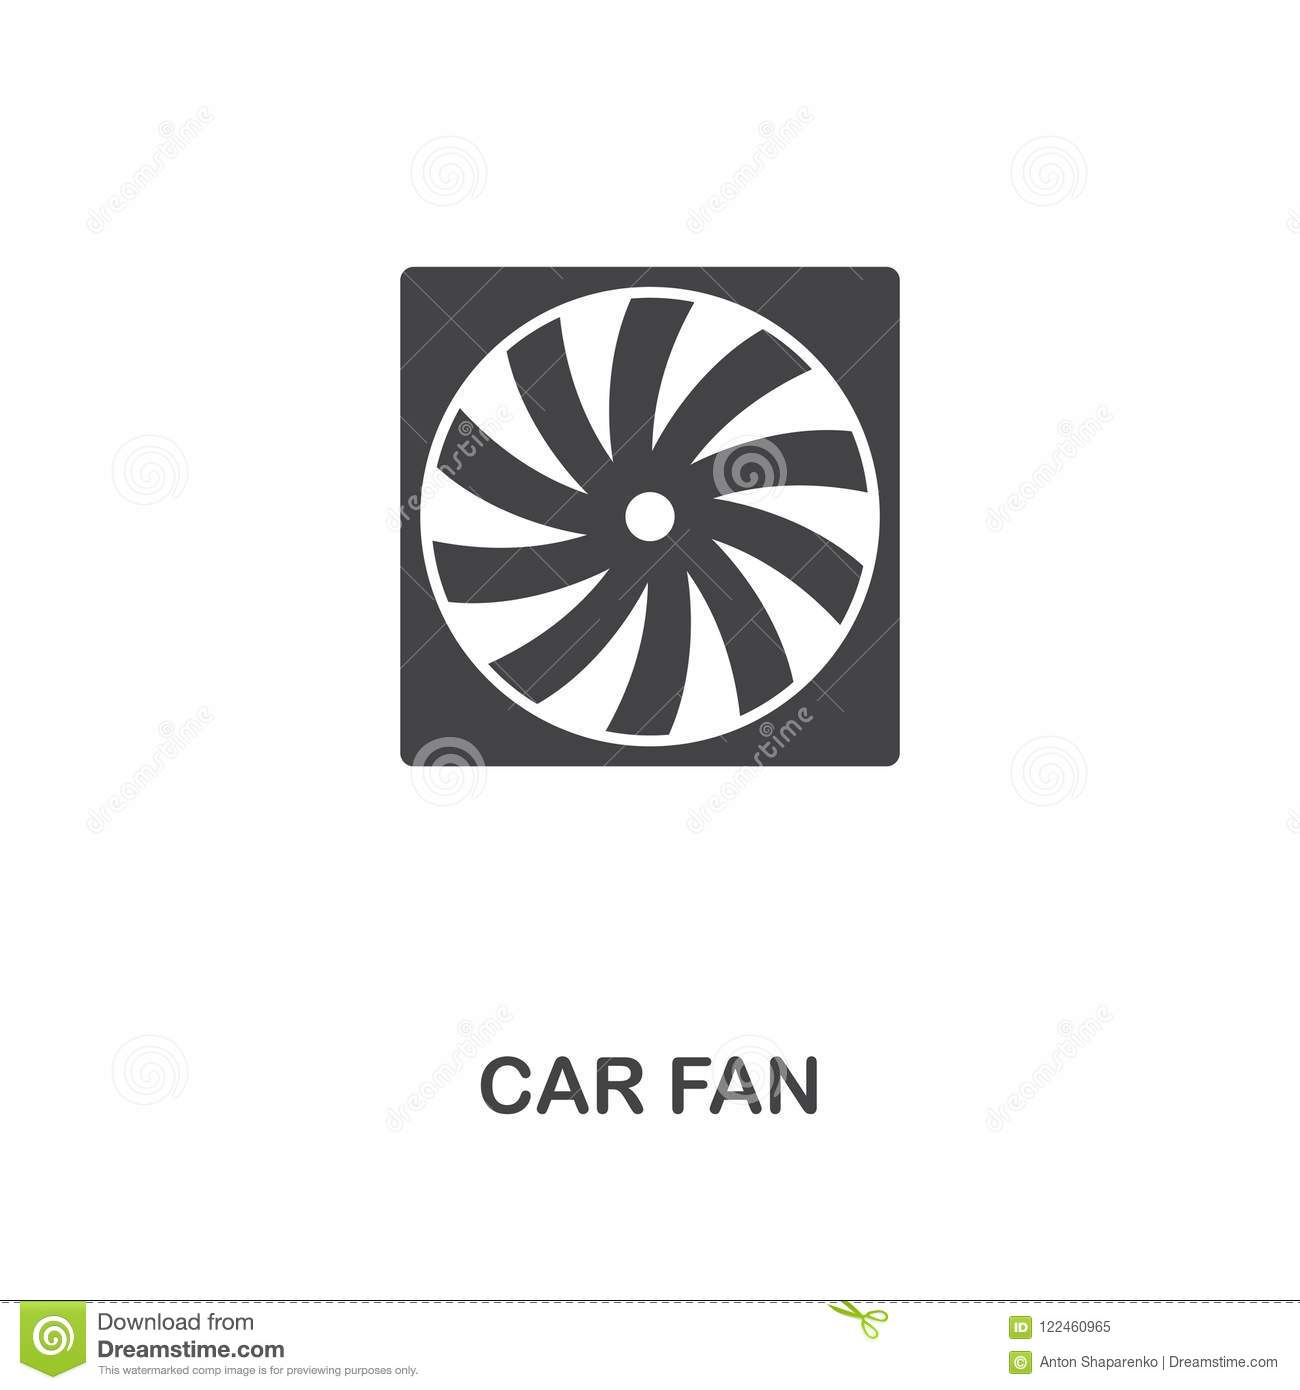 Car Fan Creative Icon Simple Element Illustration Car Fan Concept Symbol Design From Car Parts Collection Can Be Used For Web Stock Illustration Illustration Of Design Airflow 122460965